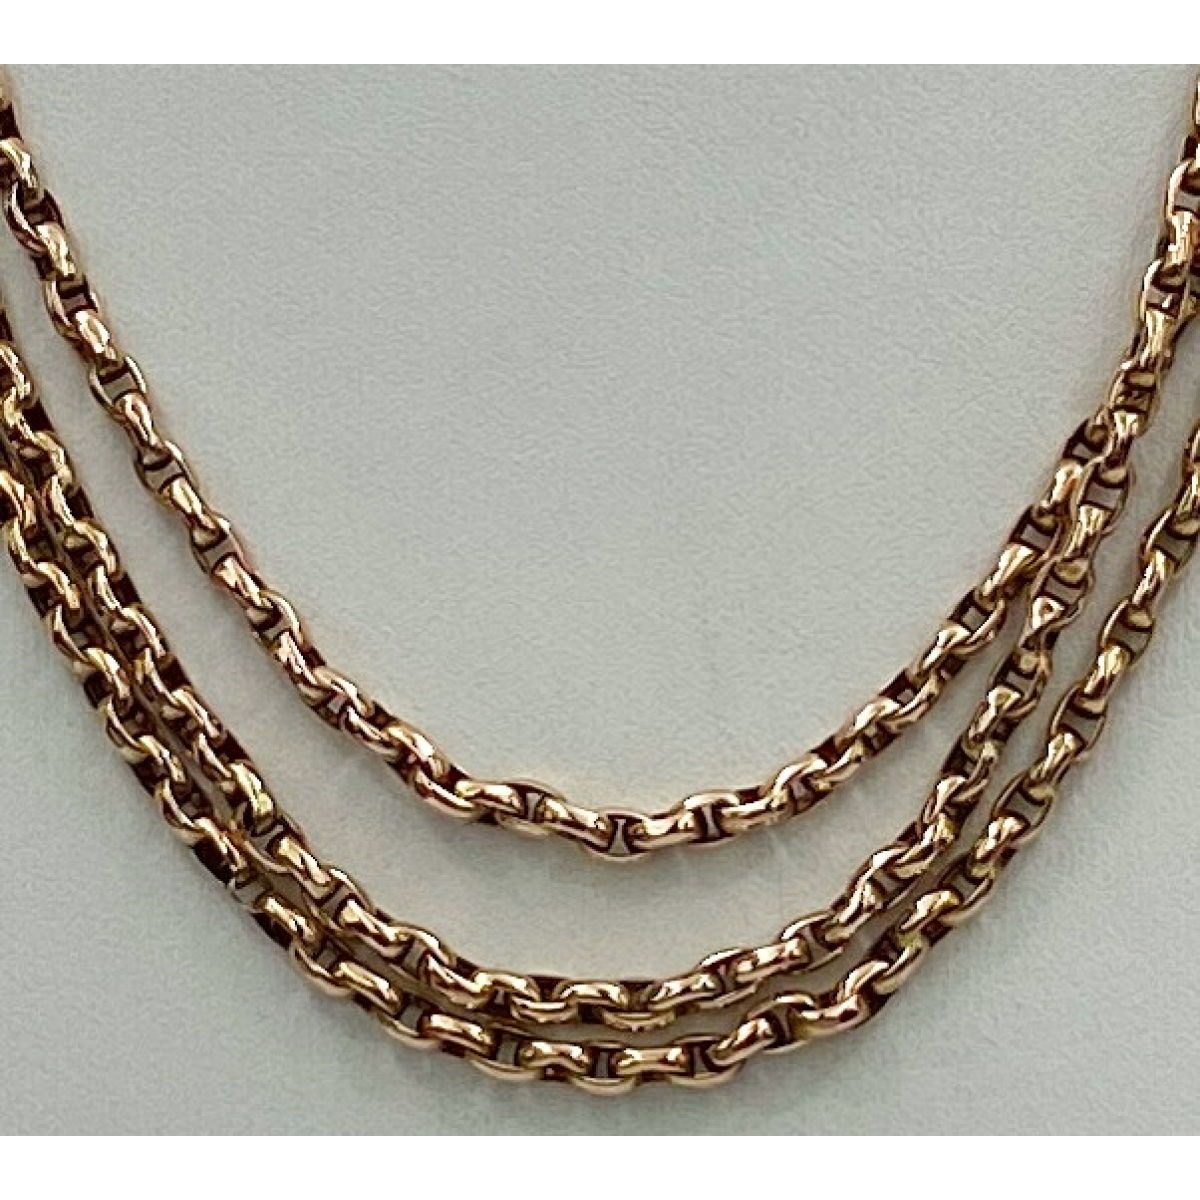 "48"" Wheat Link Antique English Gold Chain - Serviceable Length"